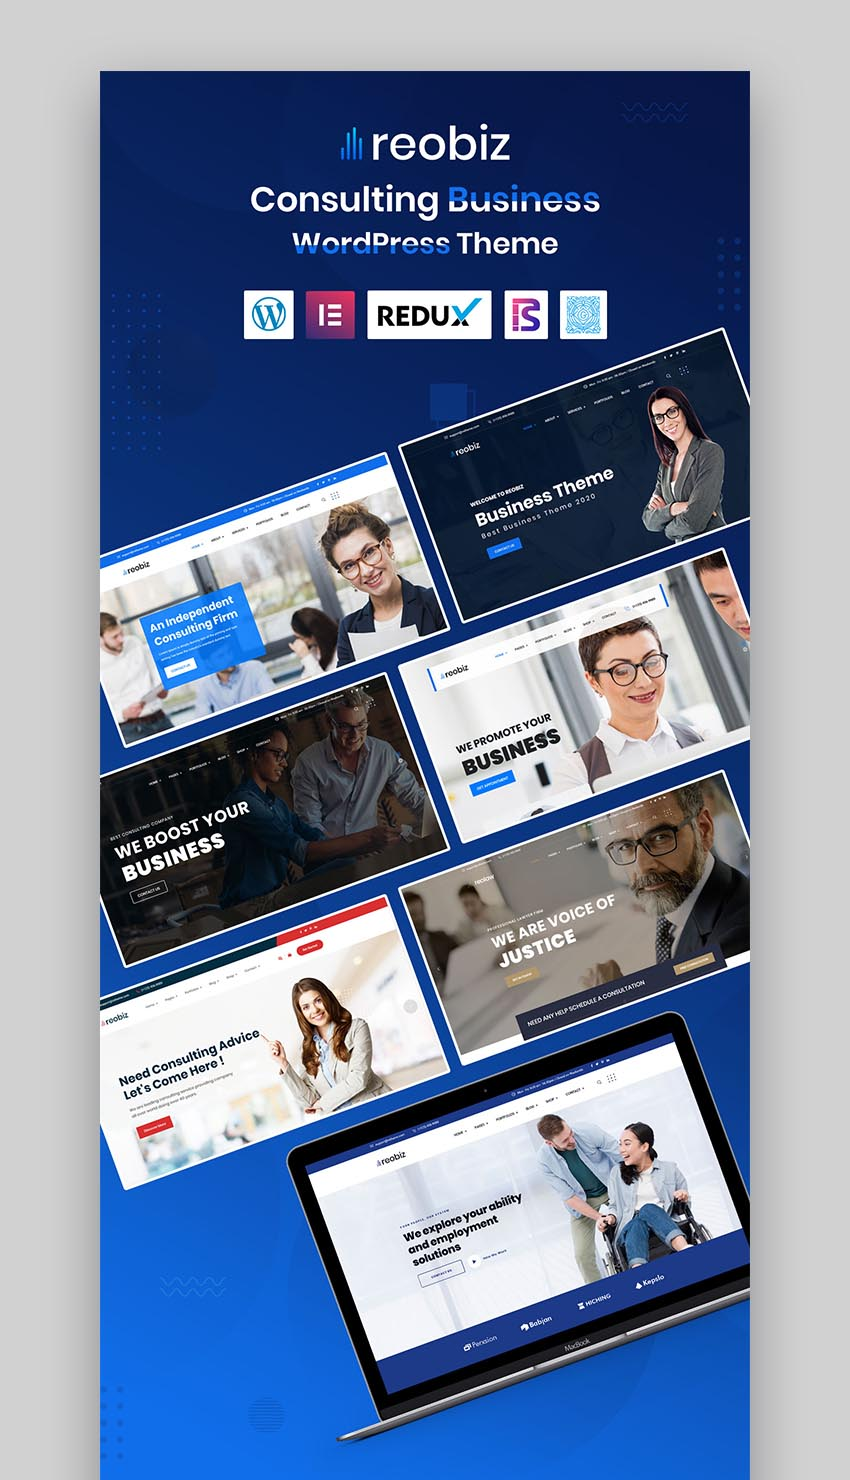 Reobiz Consulting Business WordPress Theme